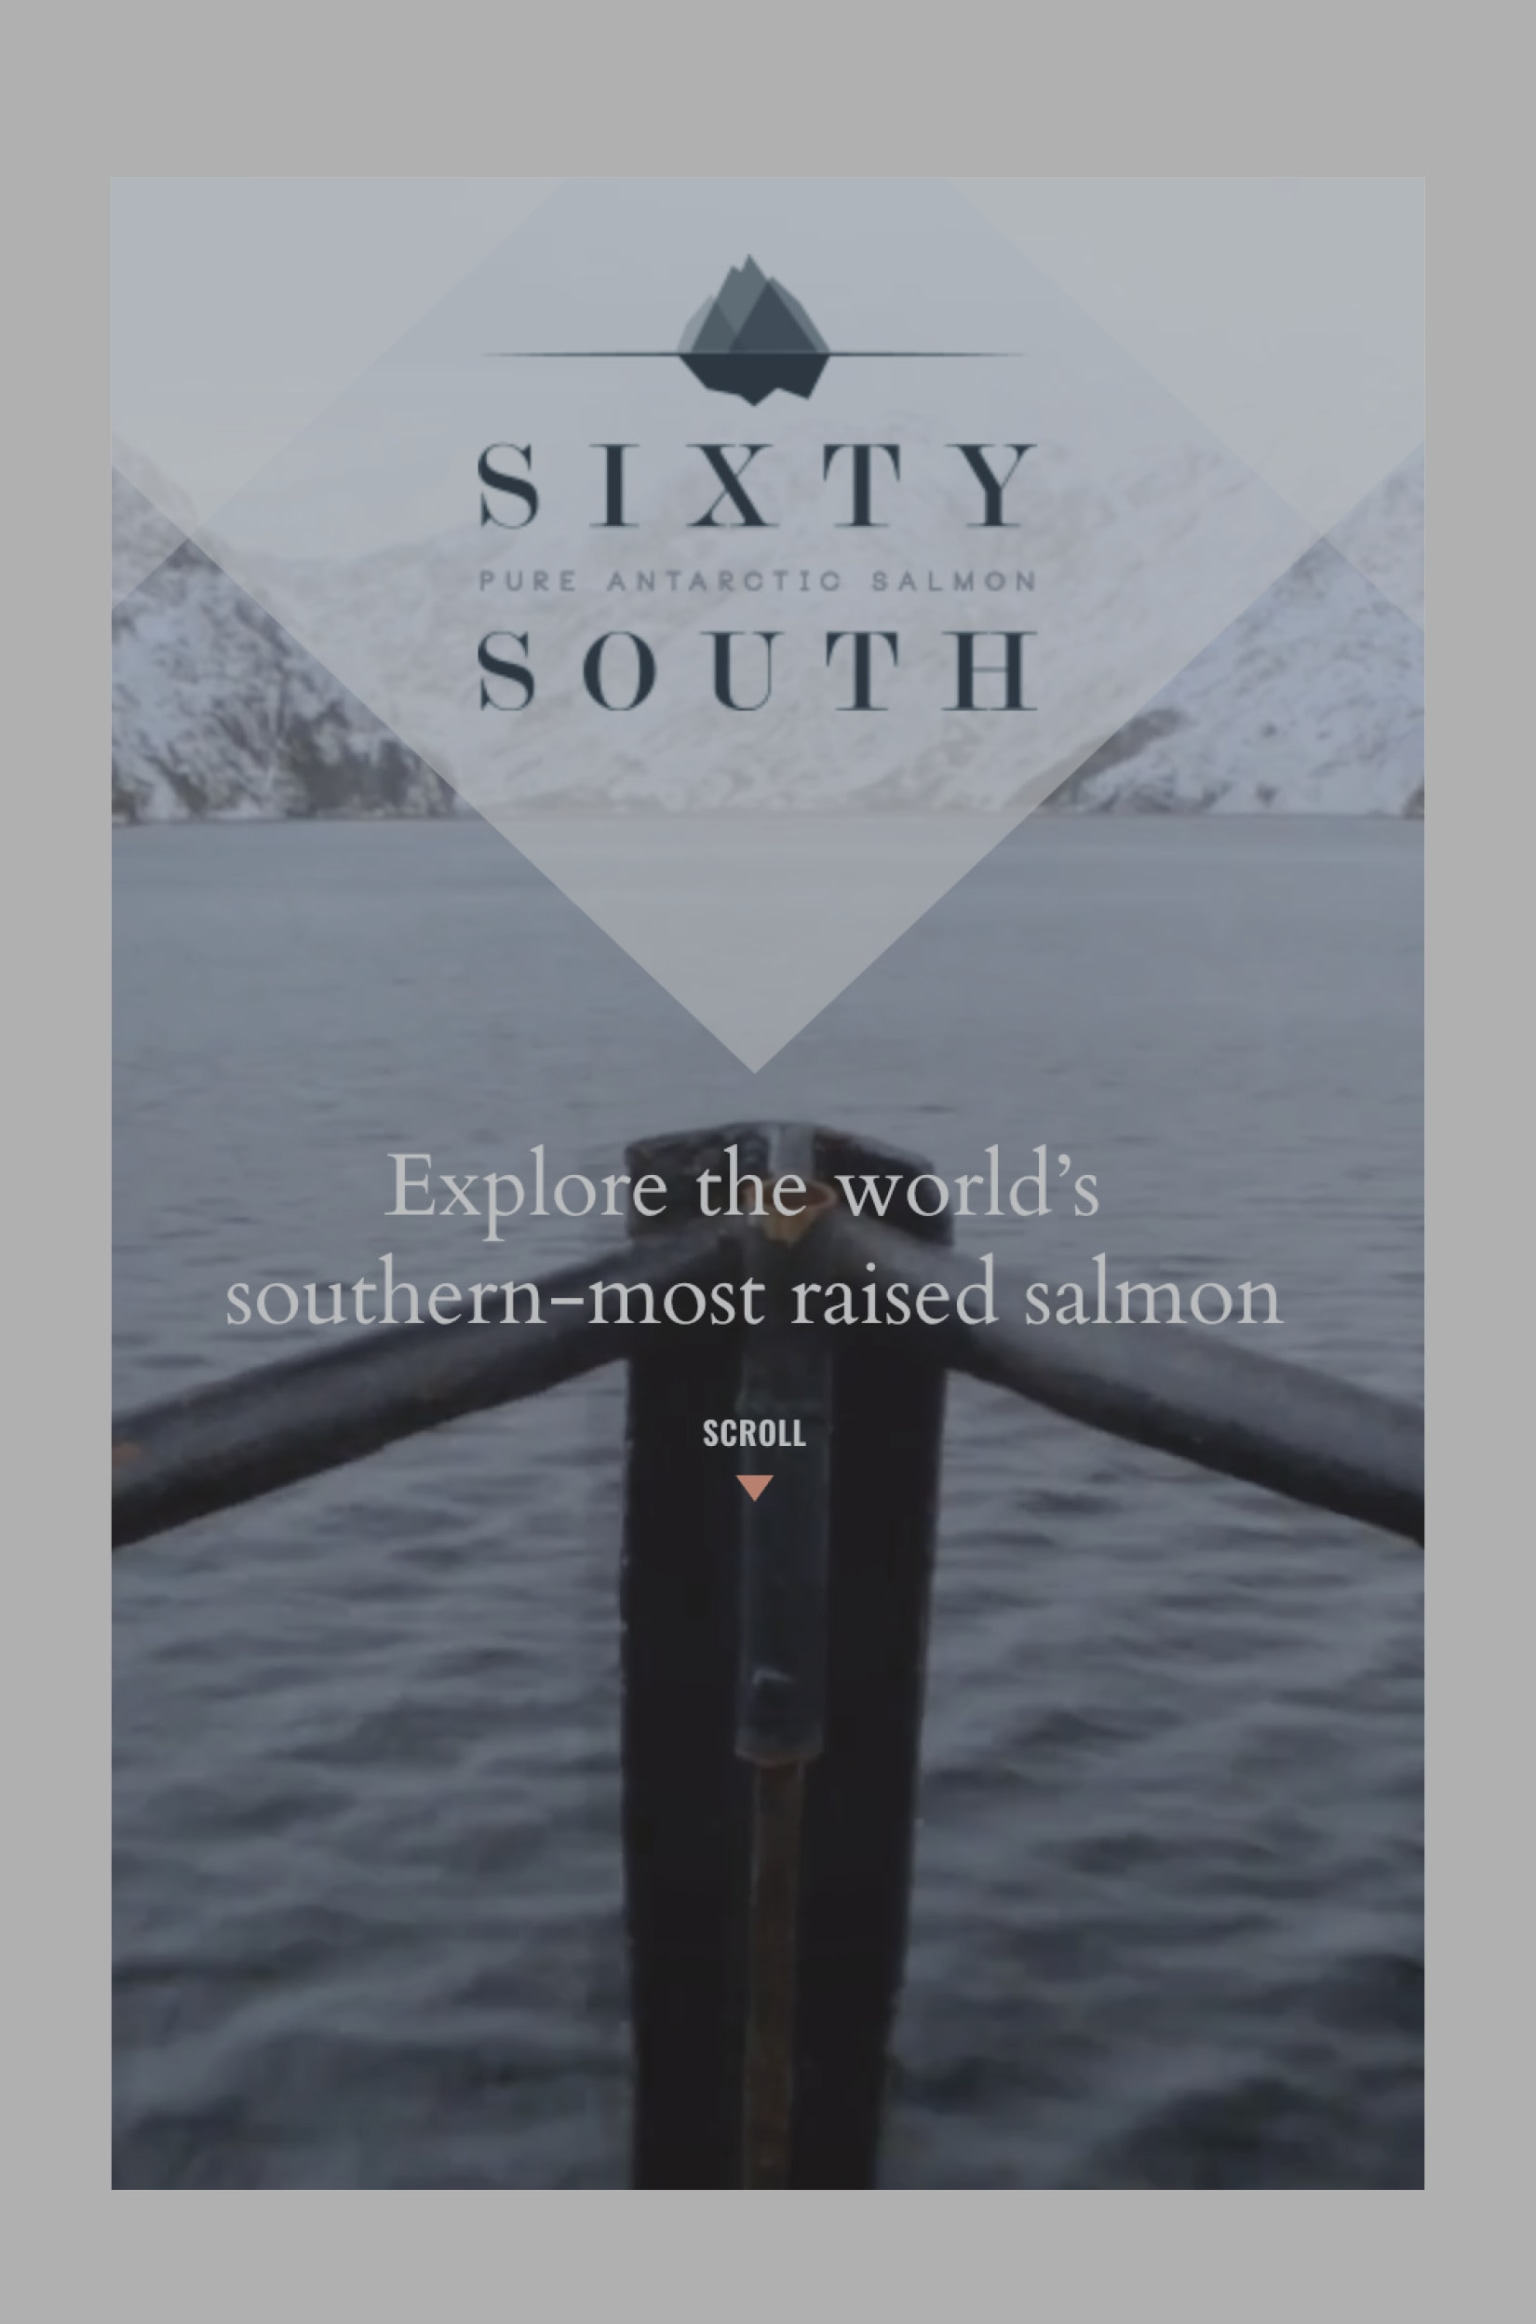 Sixty South Sustainable Salmon Brand Launch